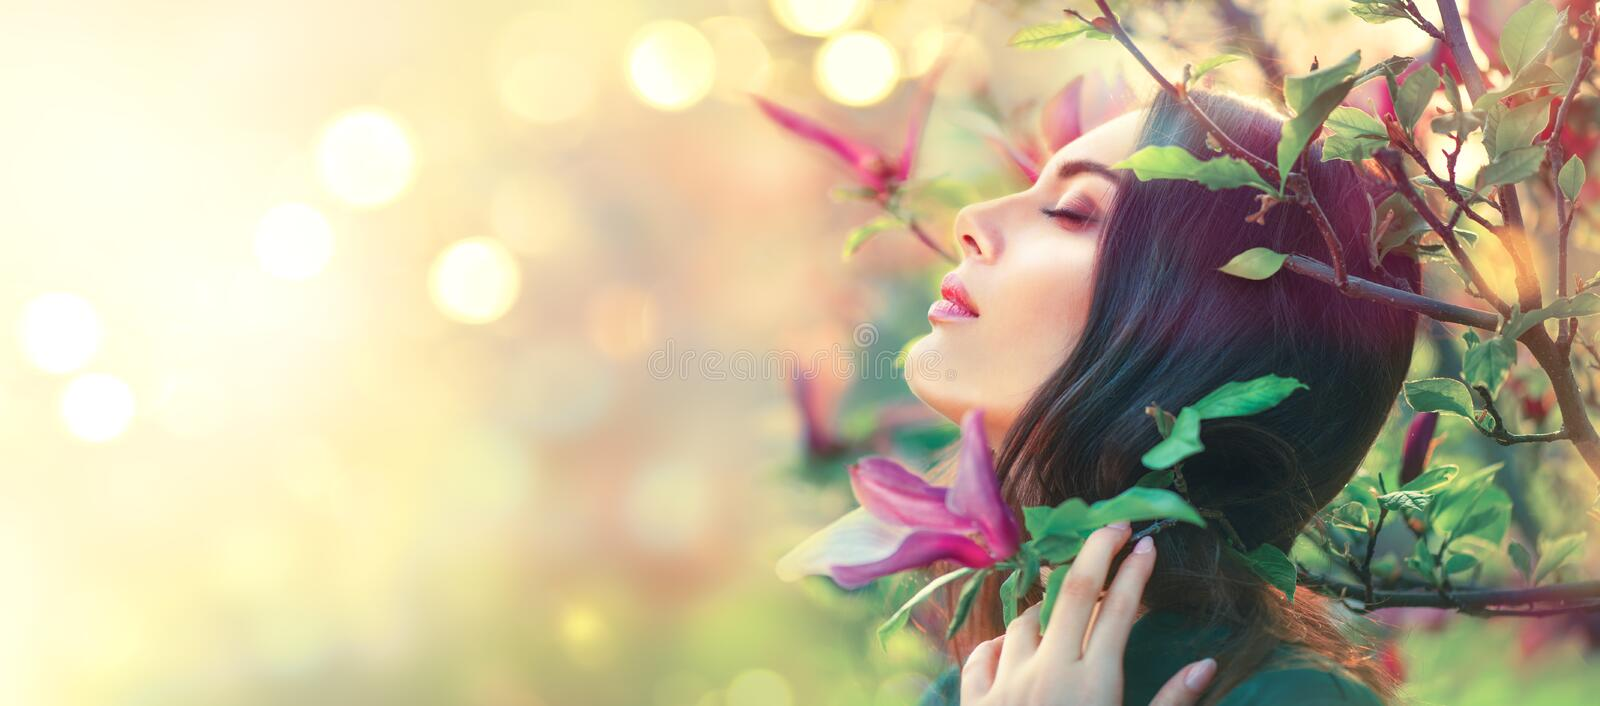 Blooming magnolia trees. Beauty young woman touching and smelling spring magnolia flowers. Happy beautiful girl enjoying nature royalty free stock photos